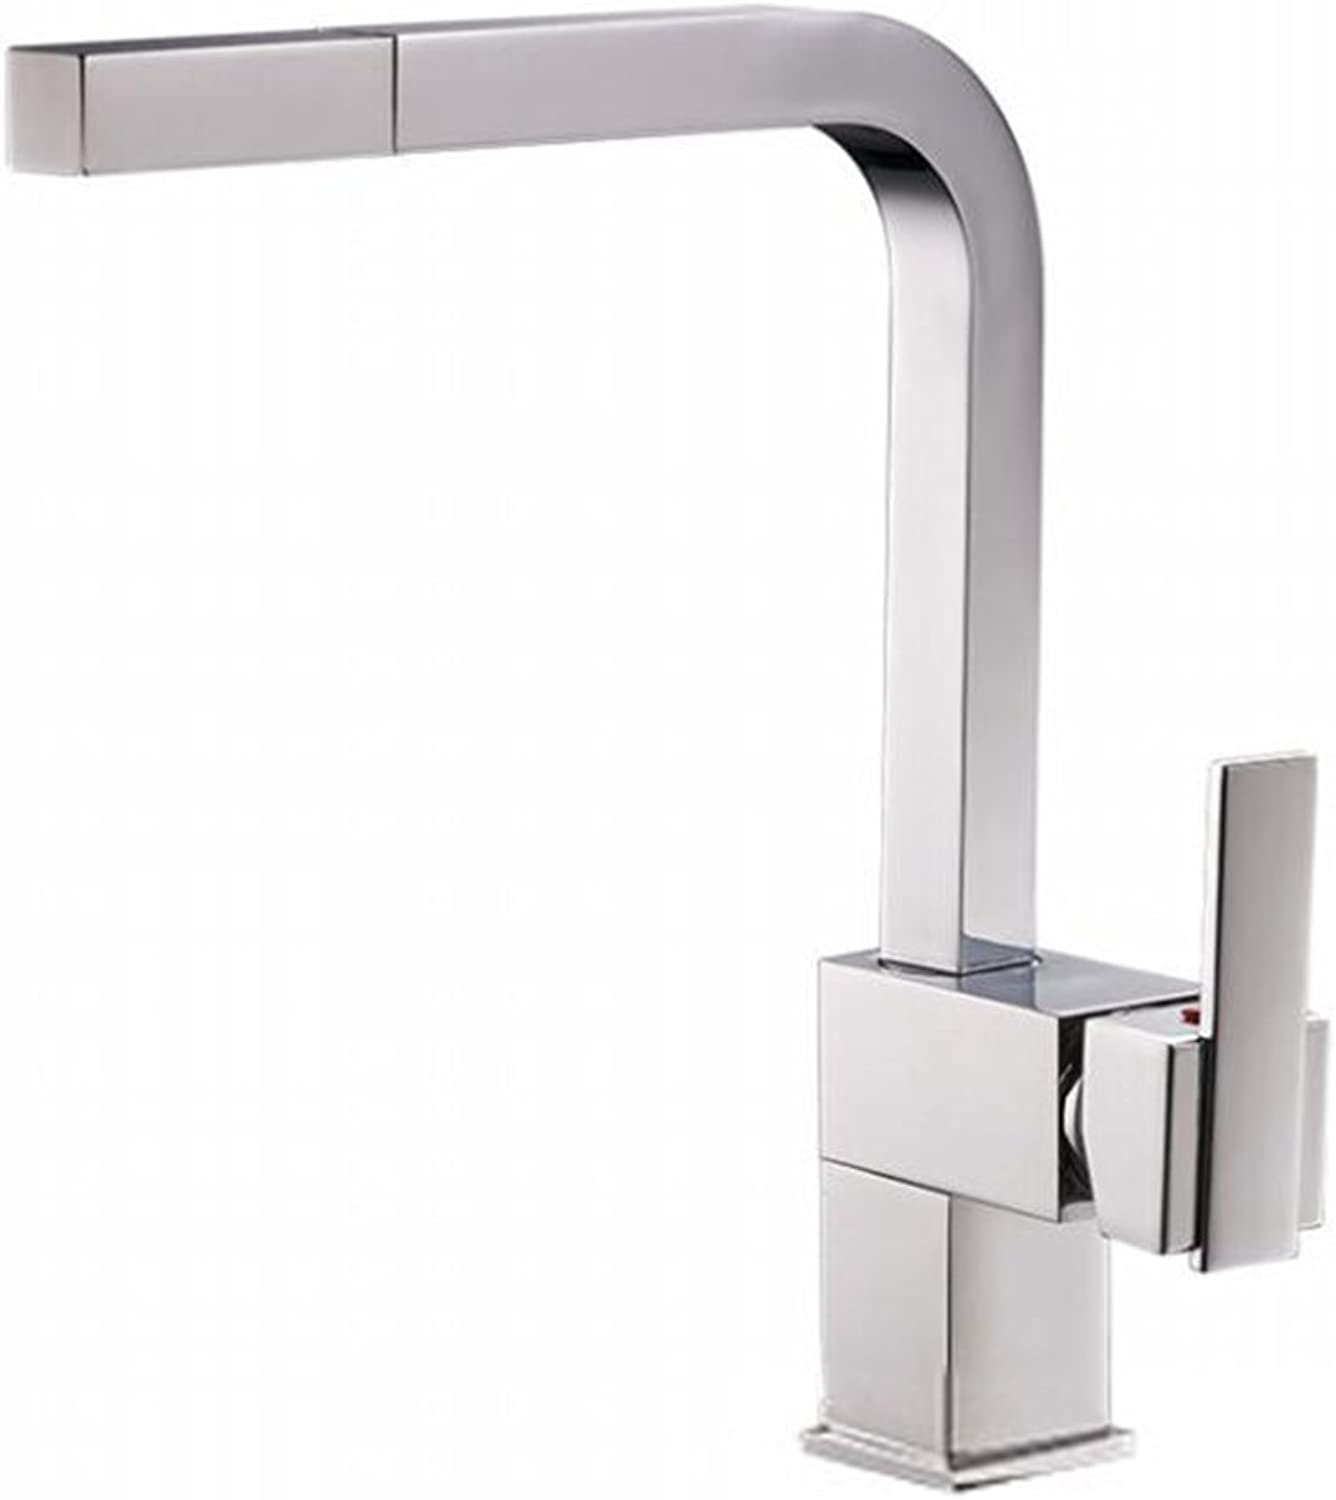 F.A.N.G.YUN New Kitchen Faucet, All Copper, Chrome-Plated, Single-Handle, Pull-Out Hot Cold Faucet Can Be redated